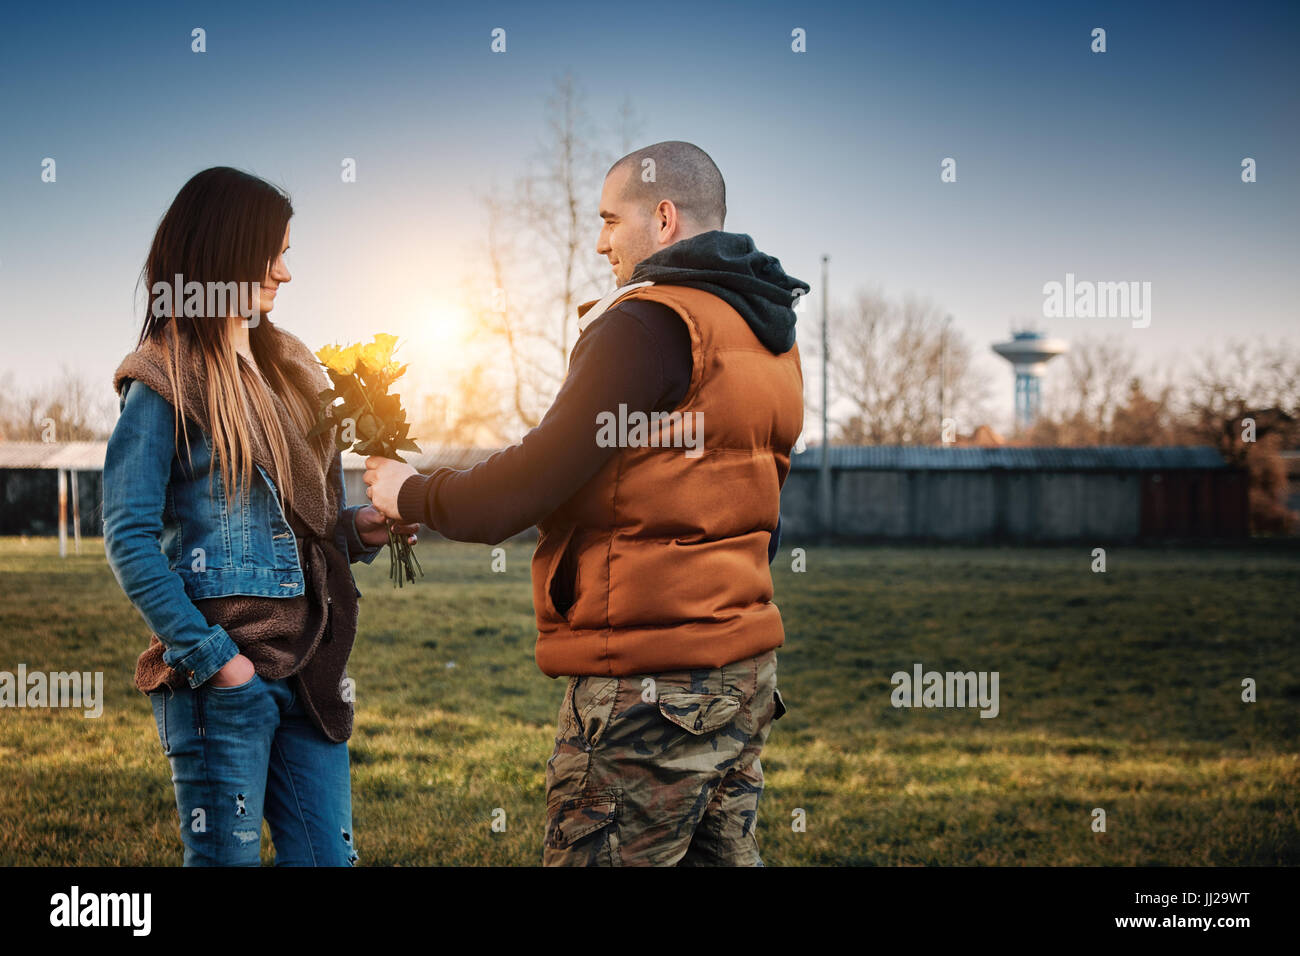 Young couple date in the park - Stock Image